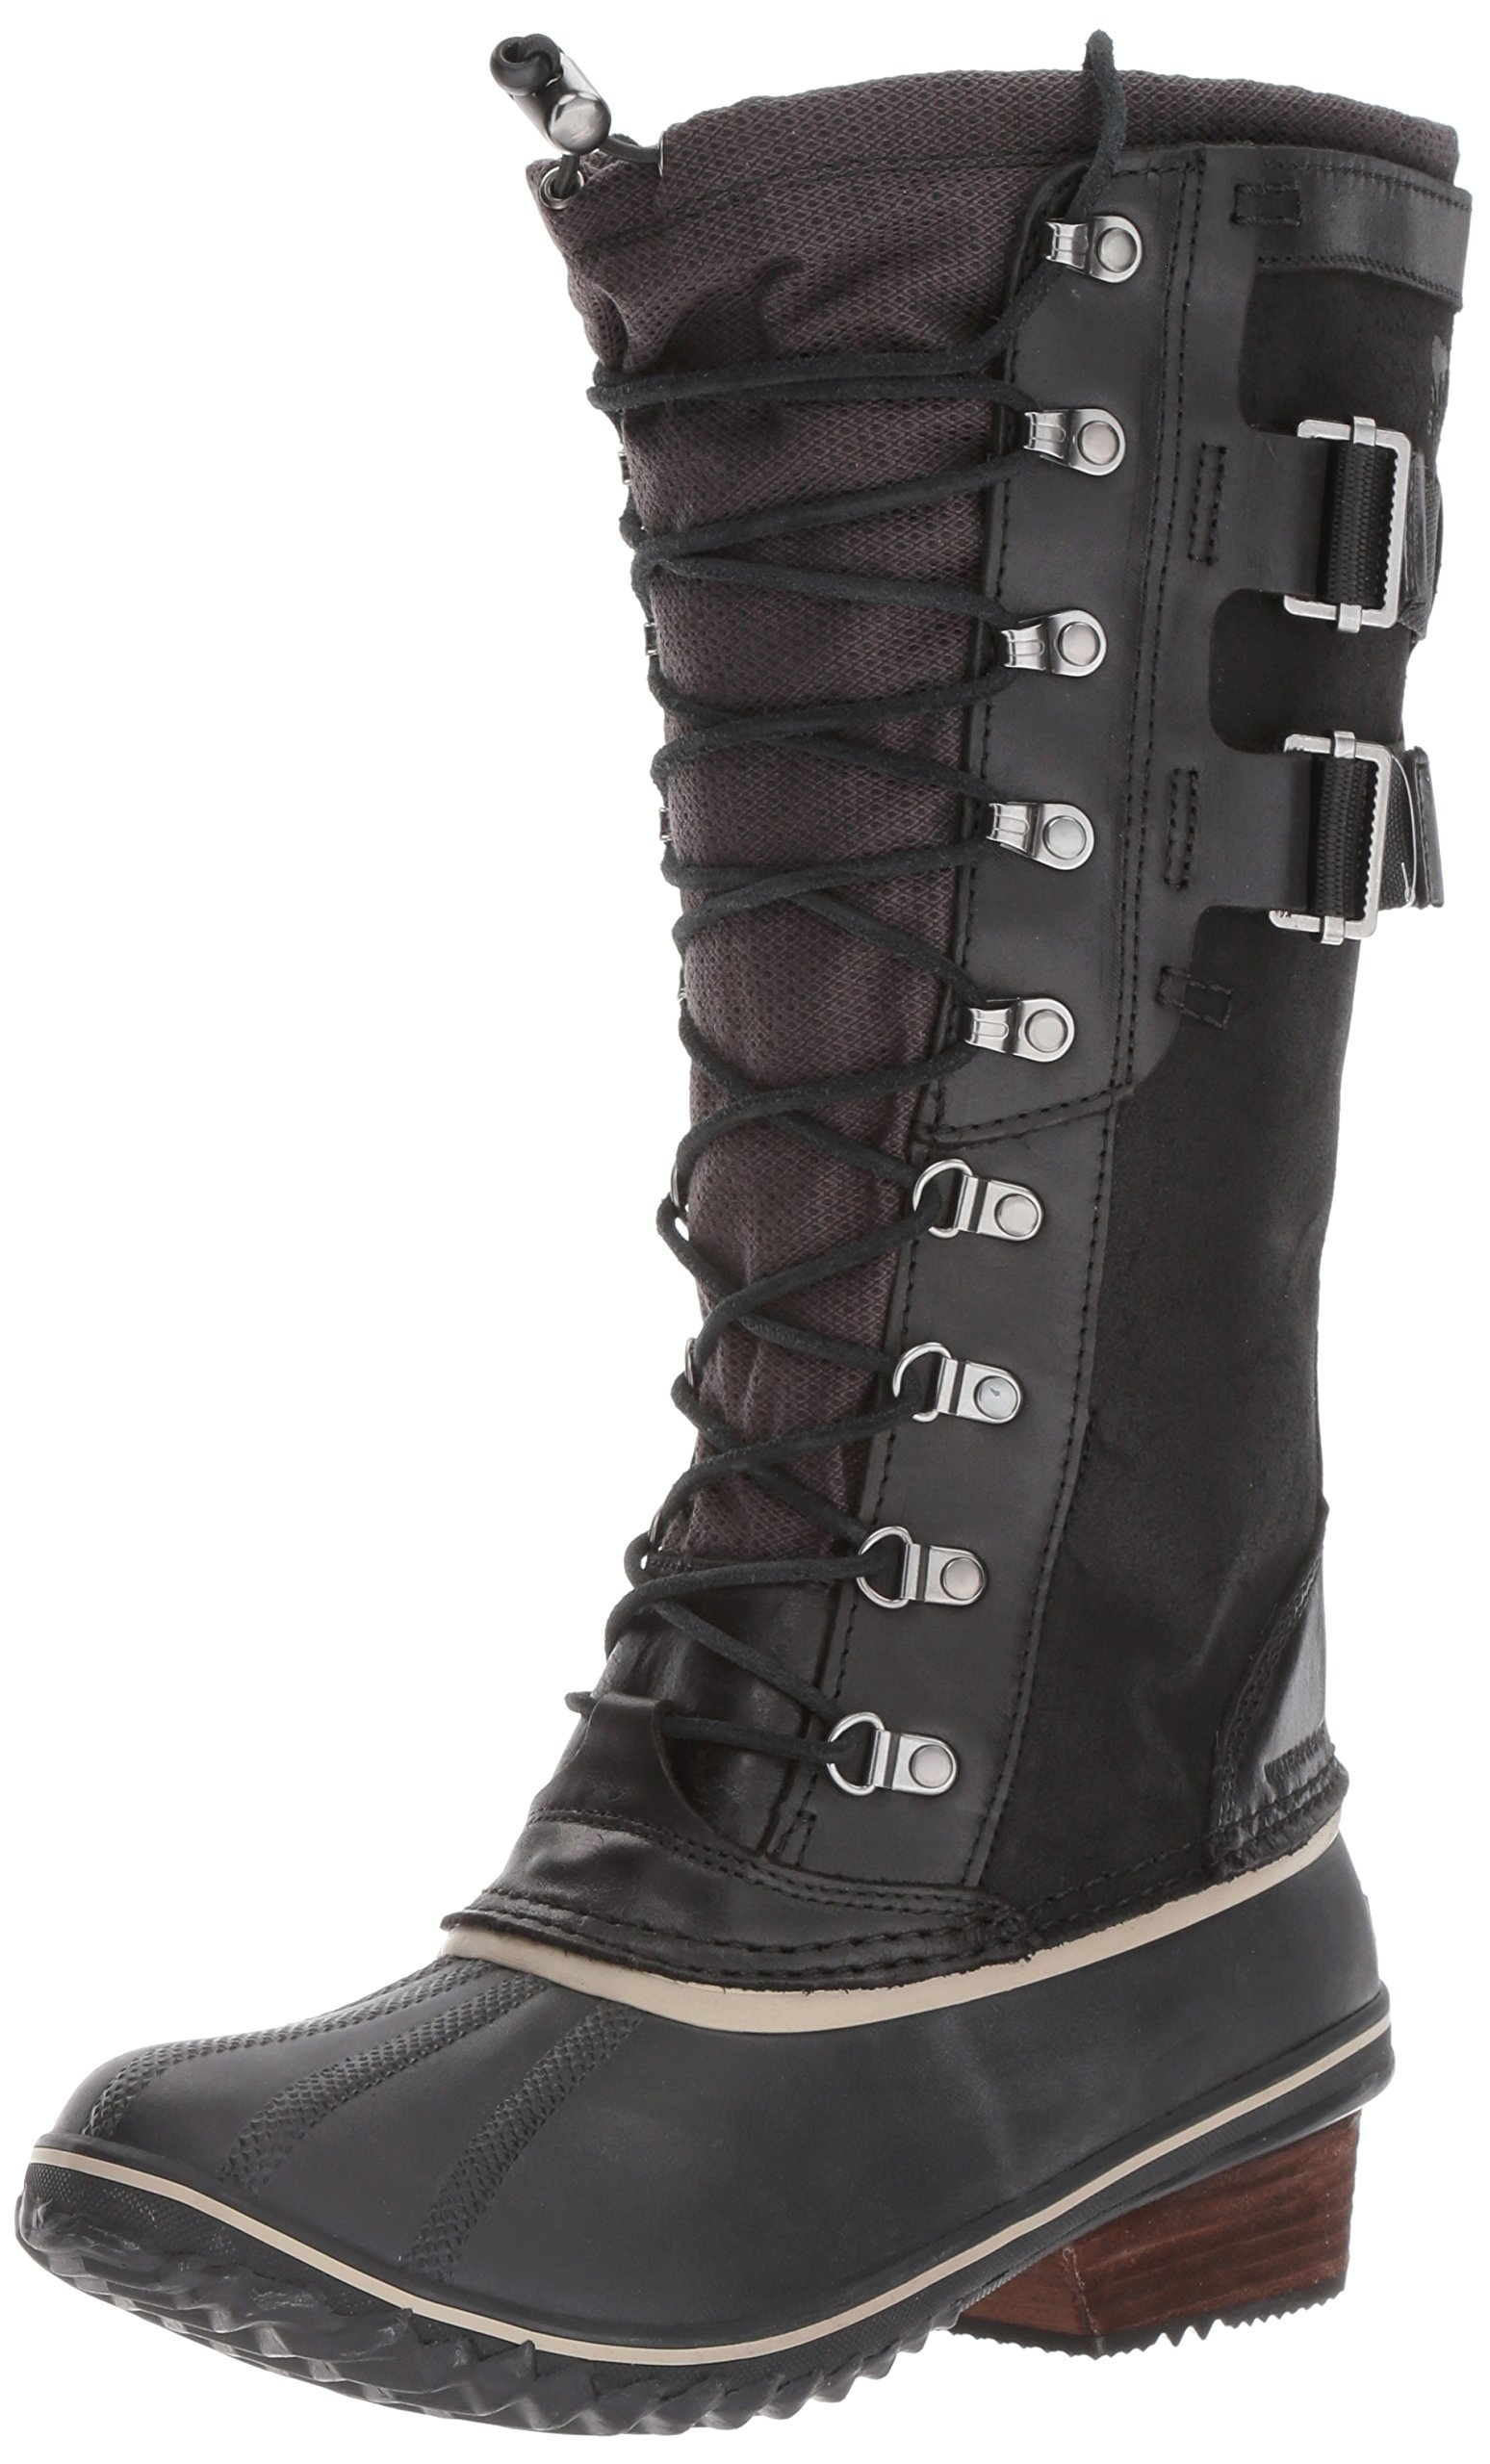 SOREL Women's Conquest Carly II Snow Boot, Black, Silver Sage, 6 B US